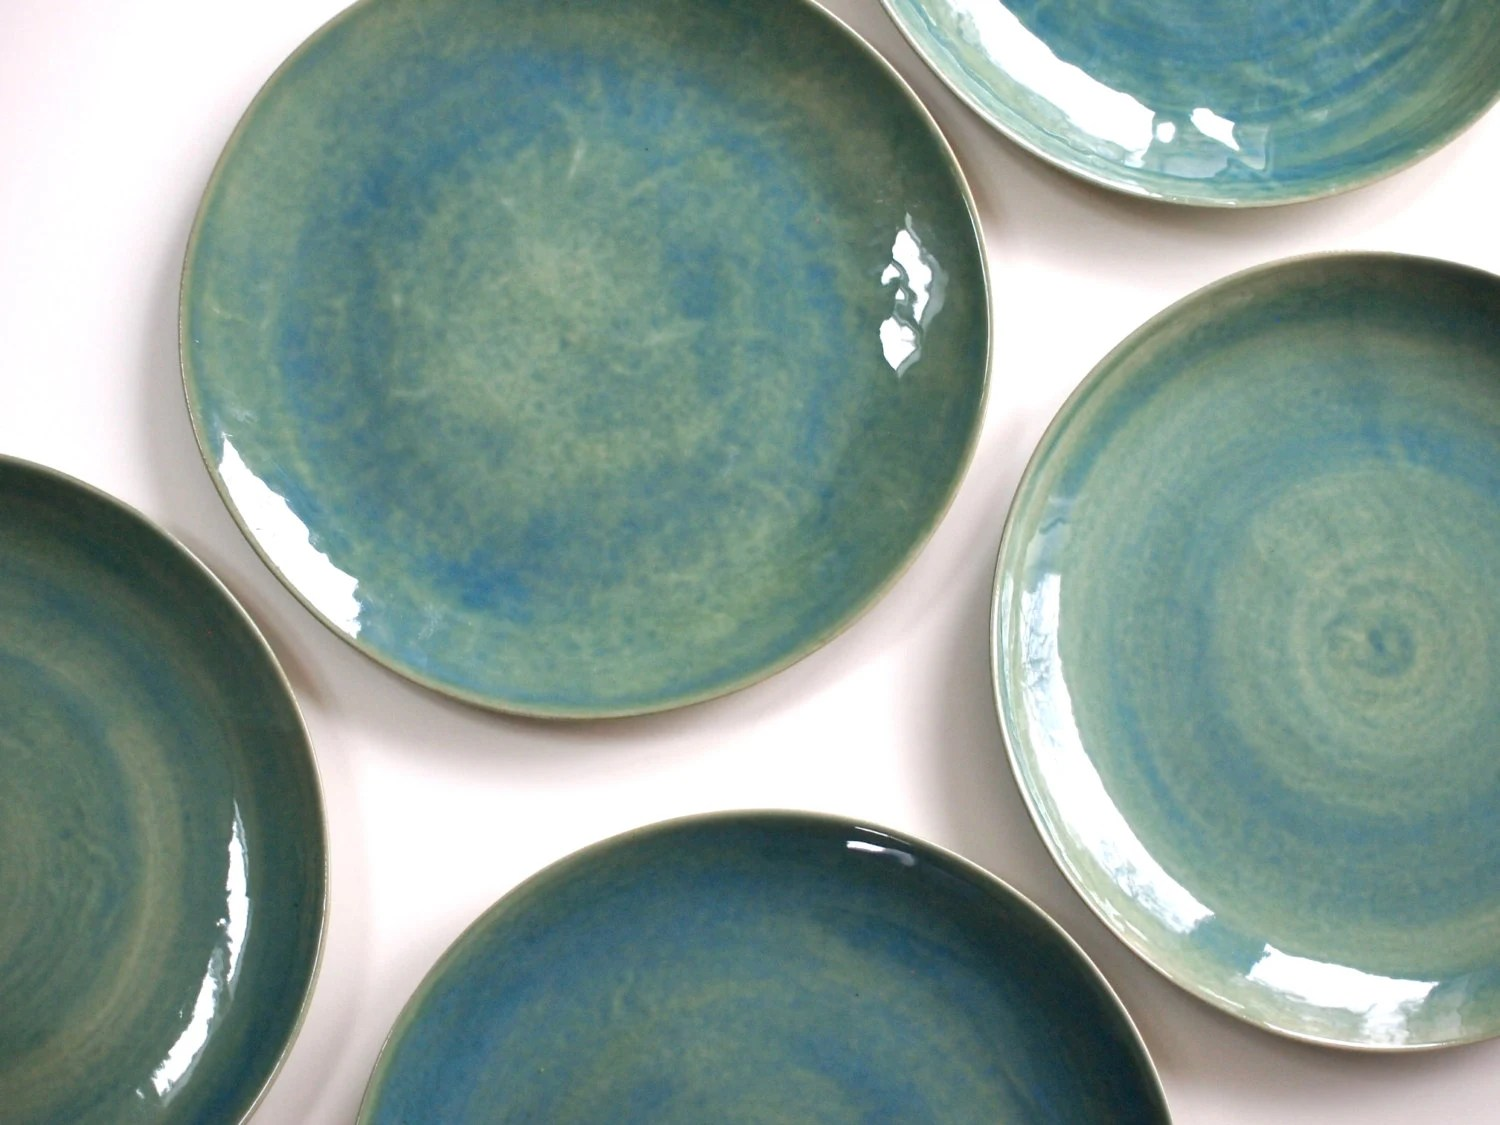 Stoneware Plates Dinner Set glazed in green. Ceramic Plate.